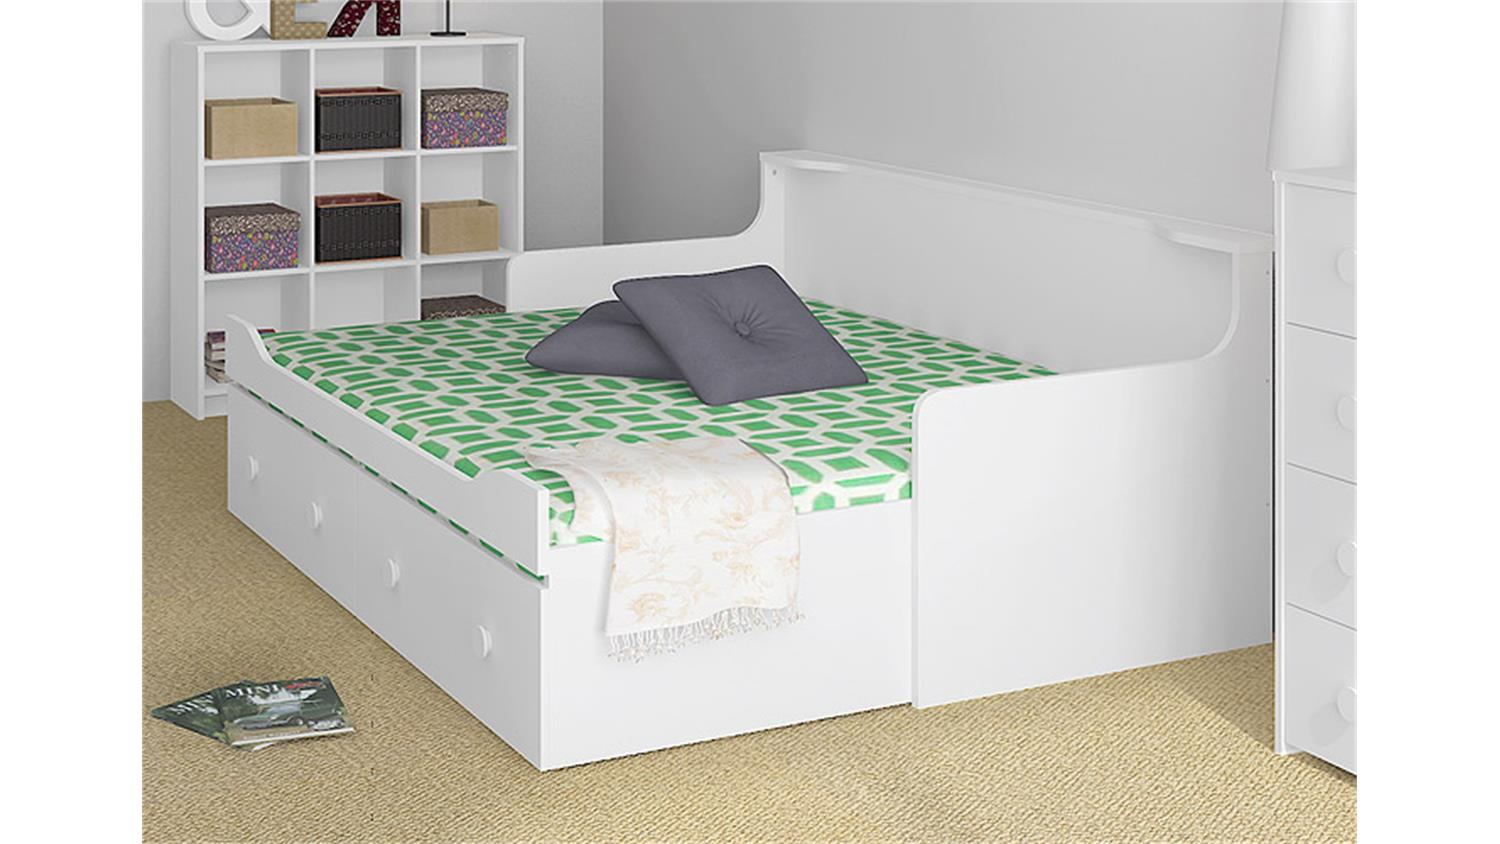 einzelbett mit ausziehbett flexa white mdf einzelbett mit ausziehbett yvonne biondi baby center. Black Bedroom Furniture Sets. Home Design Ideas